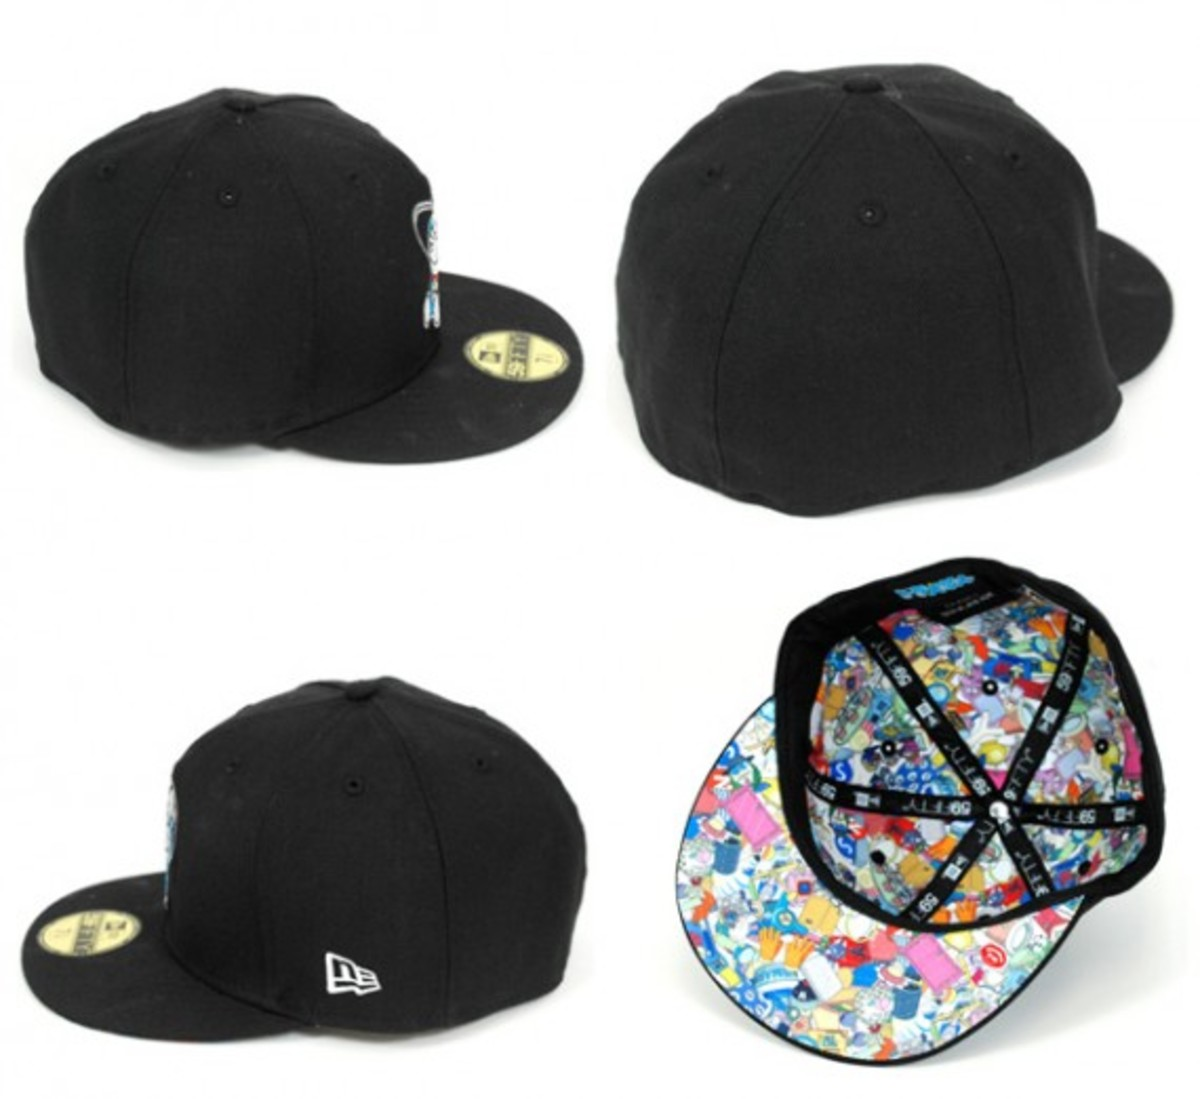 new-era-doraemon-cap-collection-02